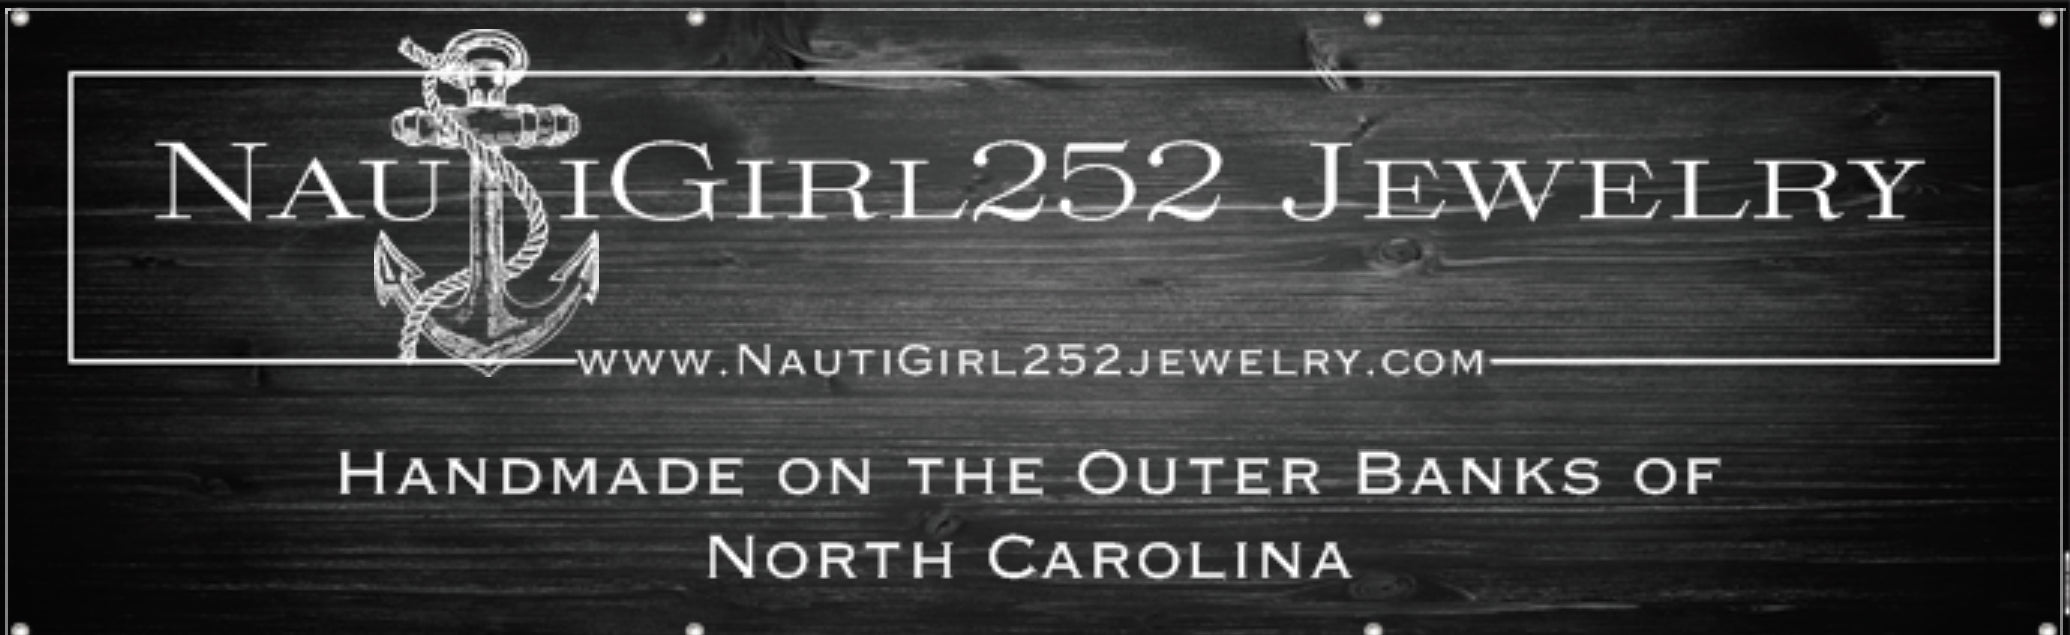 Nautigirl252 Jewelry Cork Co.